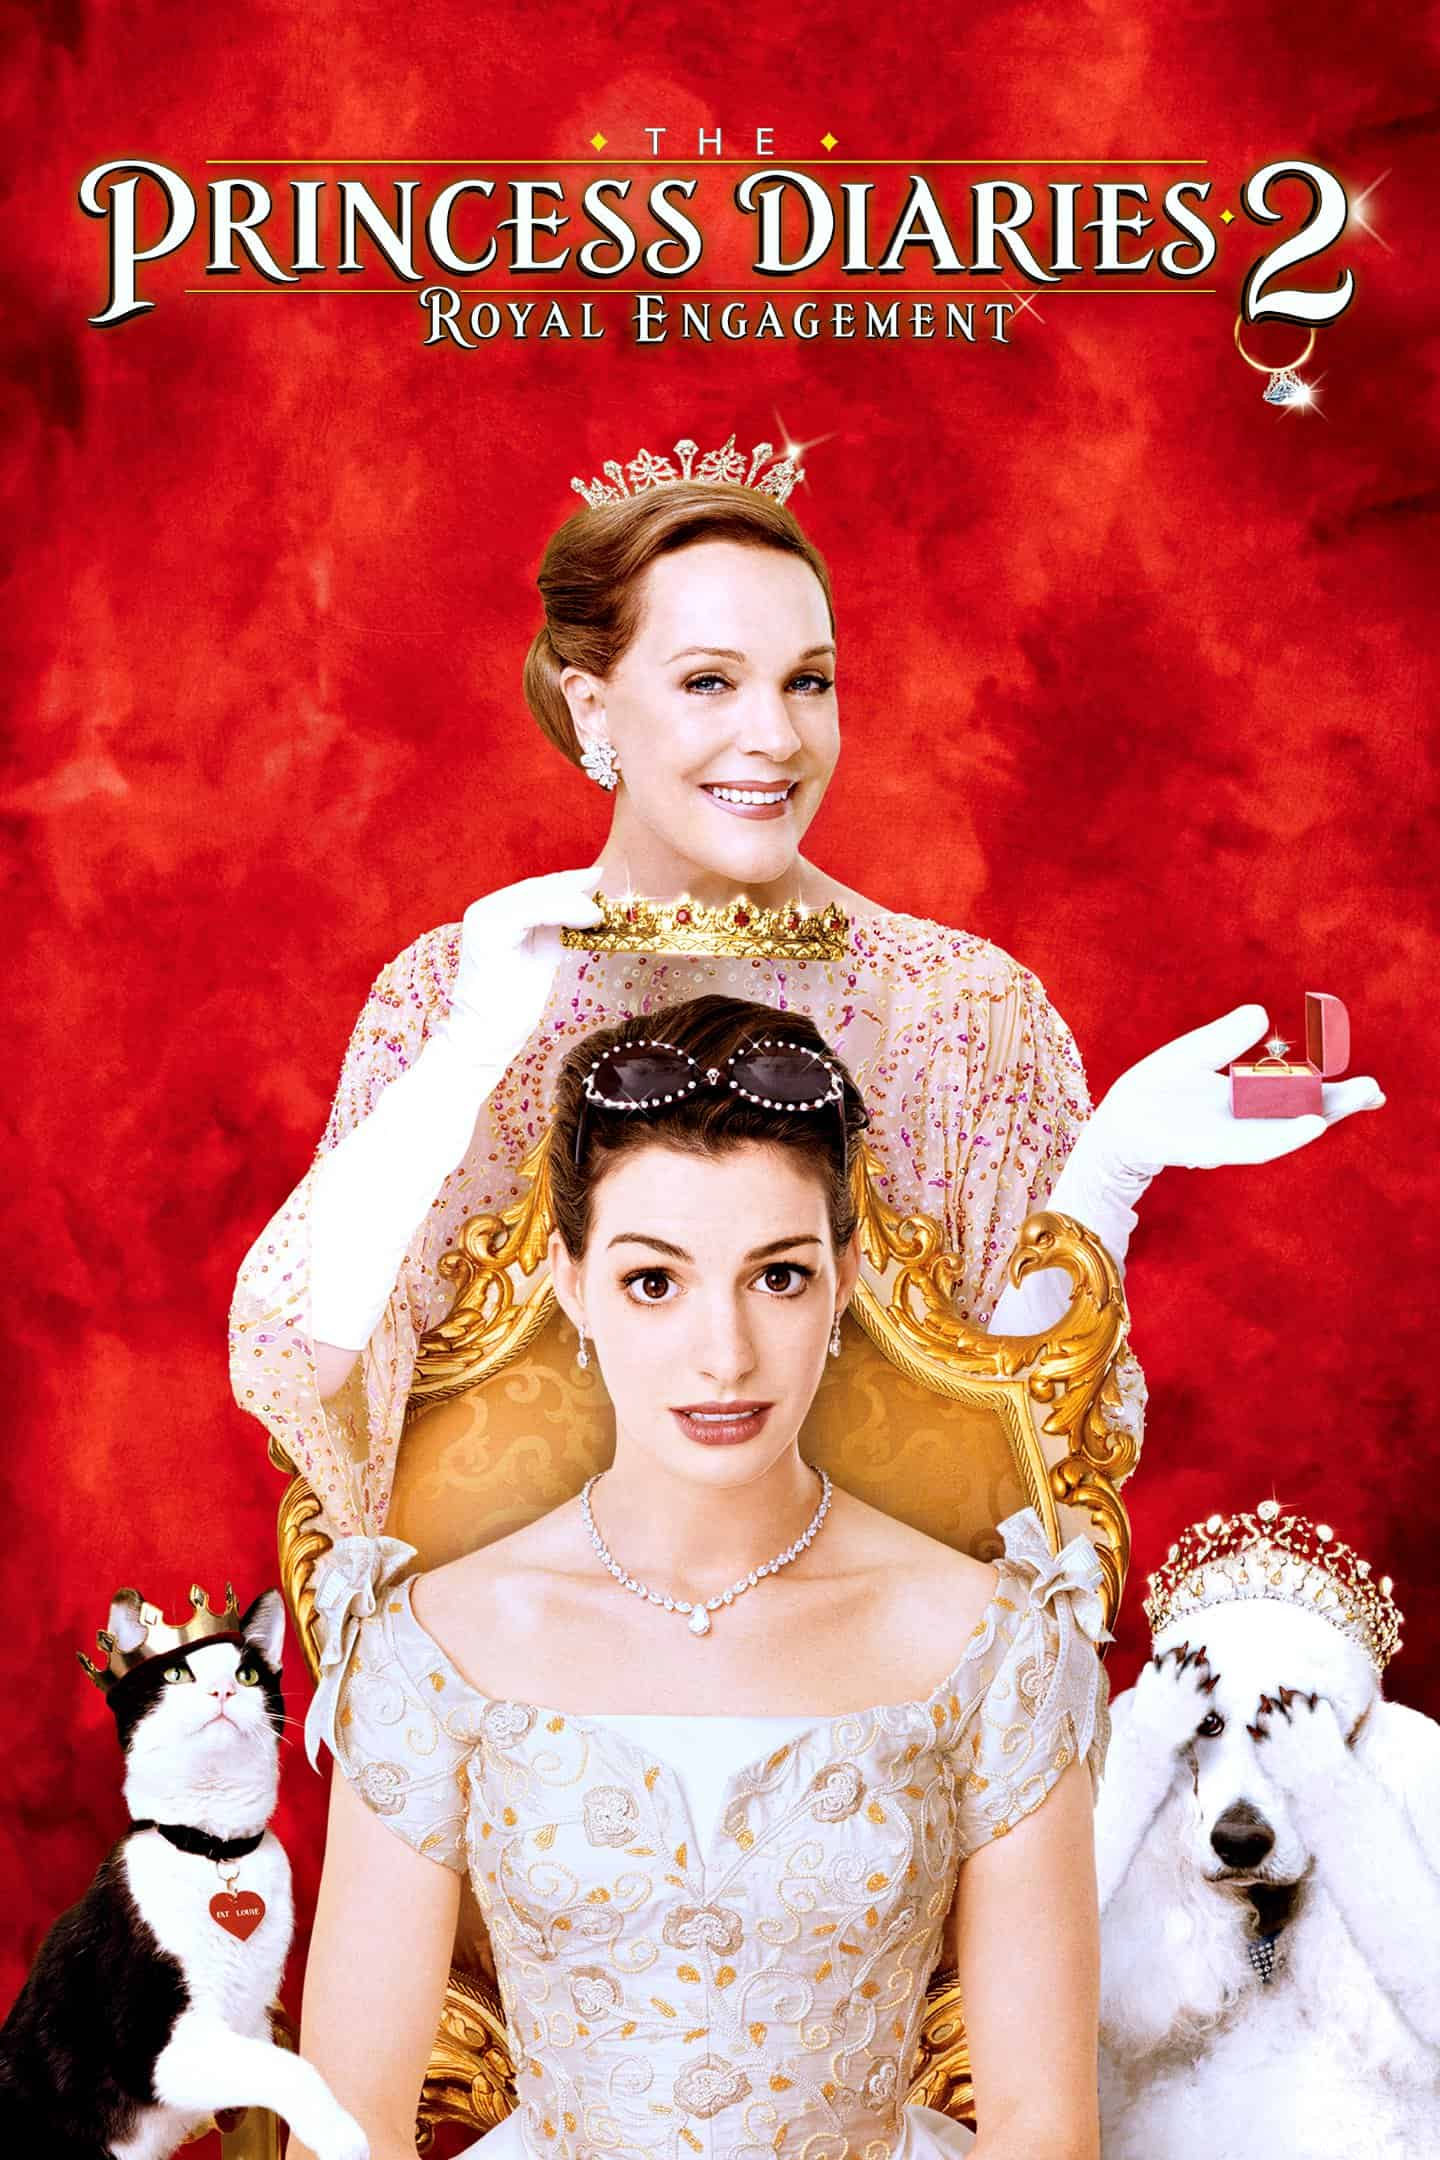 The Princess Diaries 2: Royal Engagement, 2004